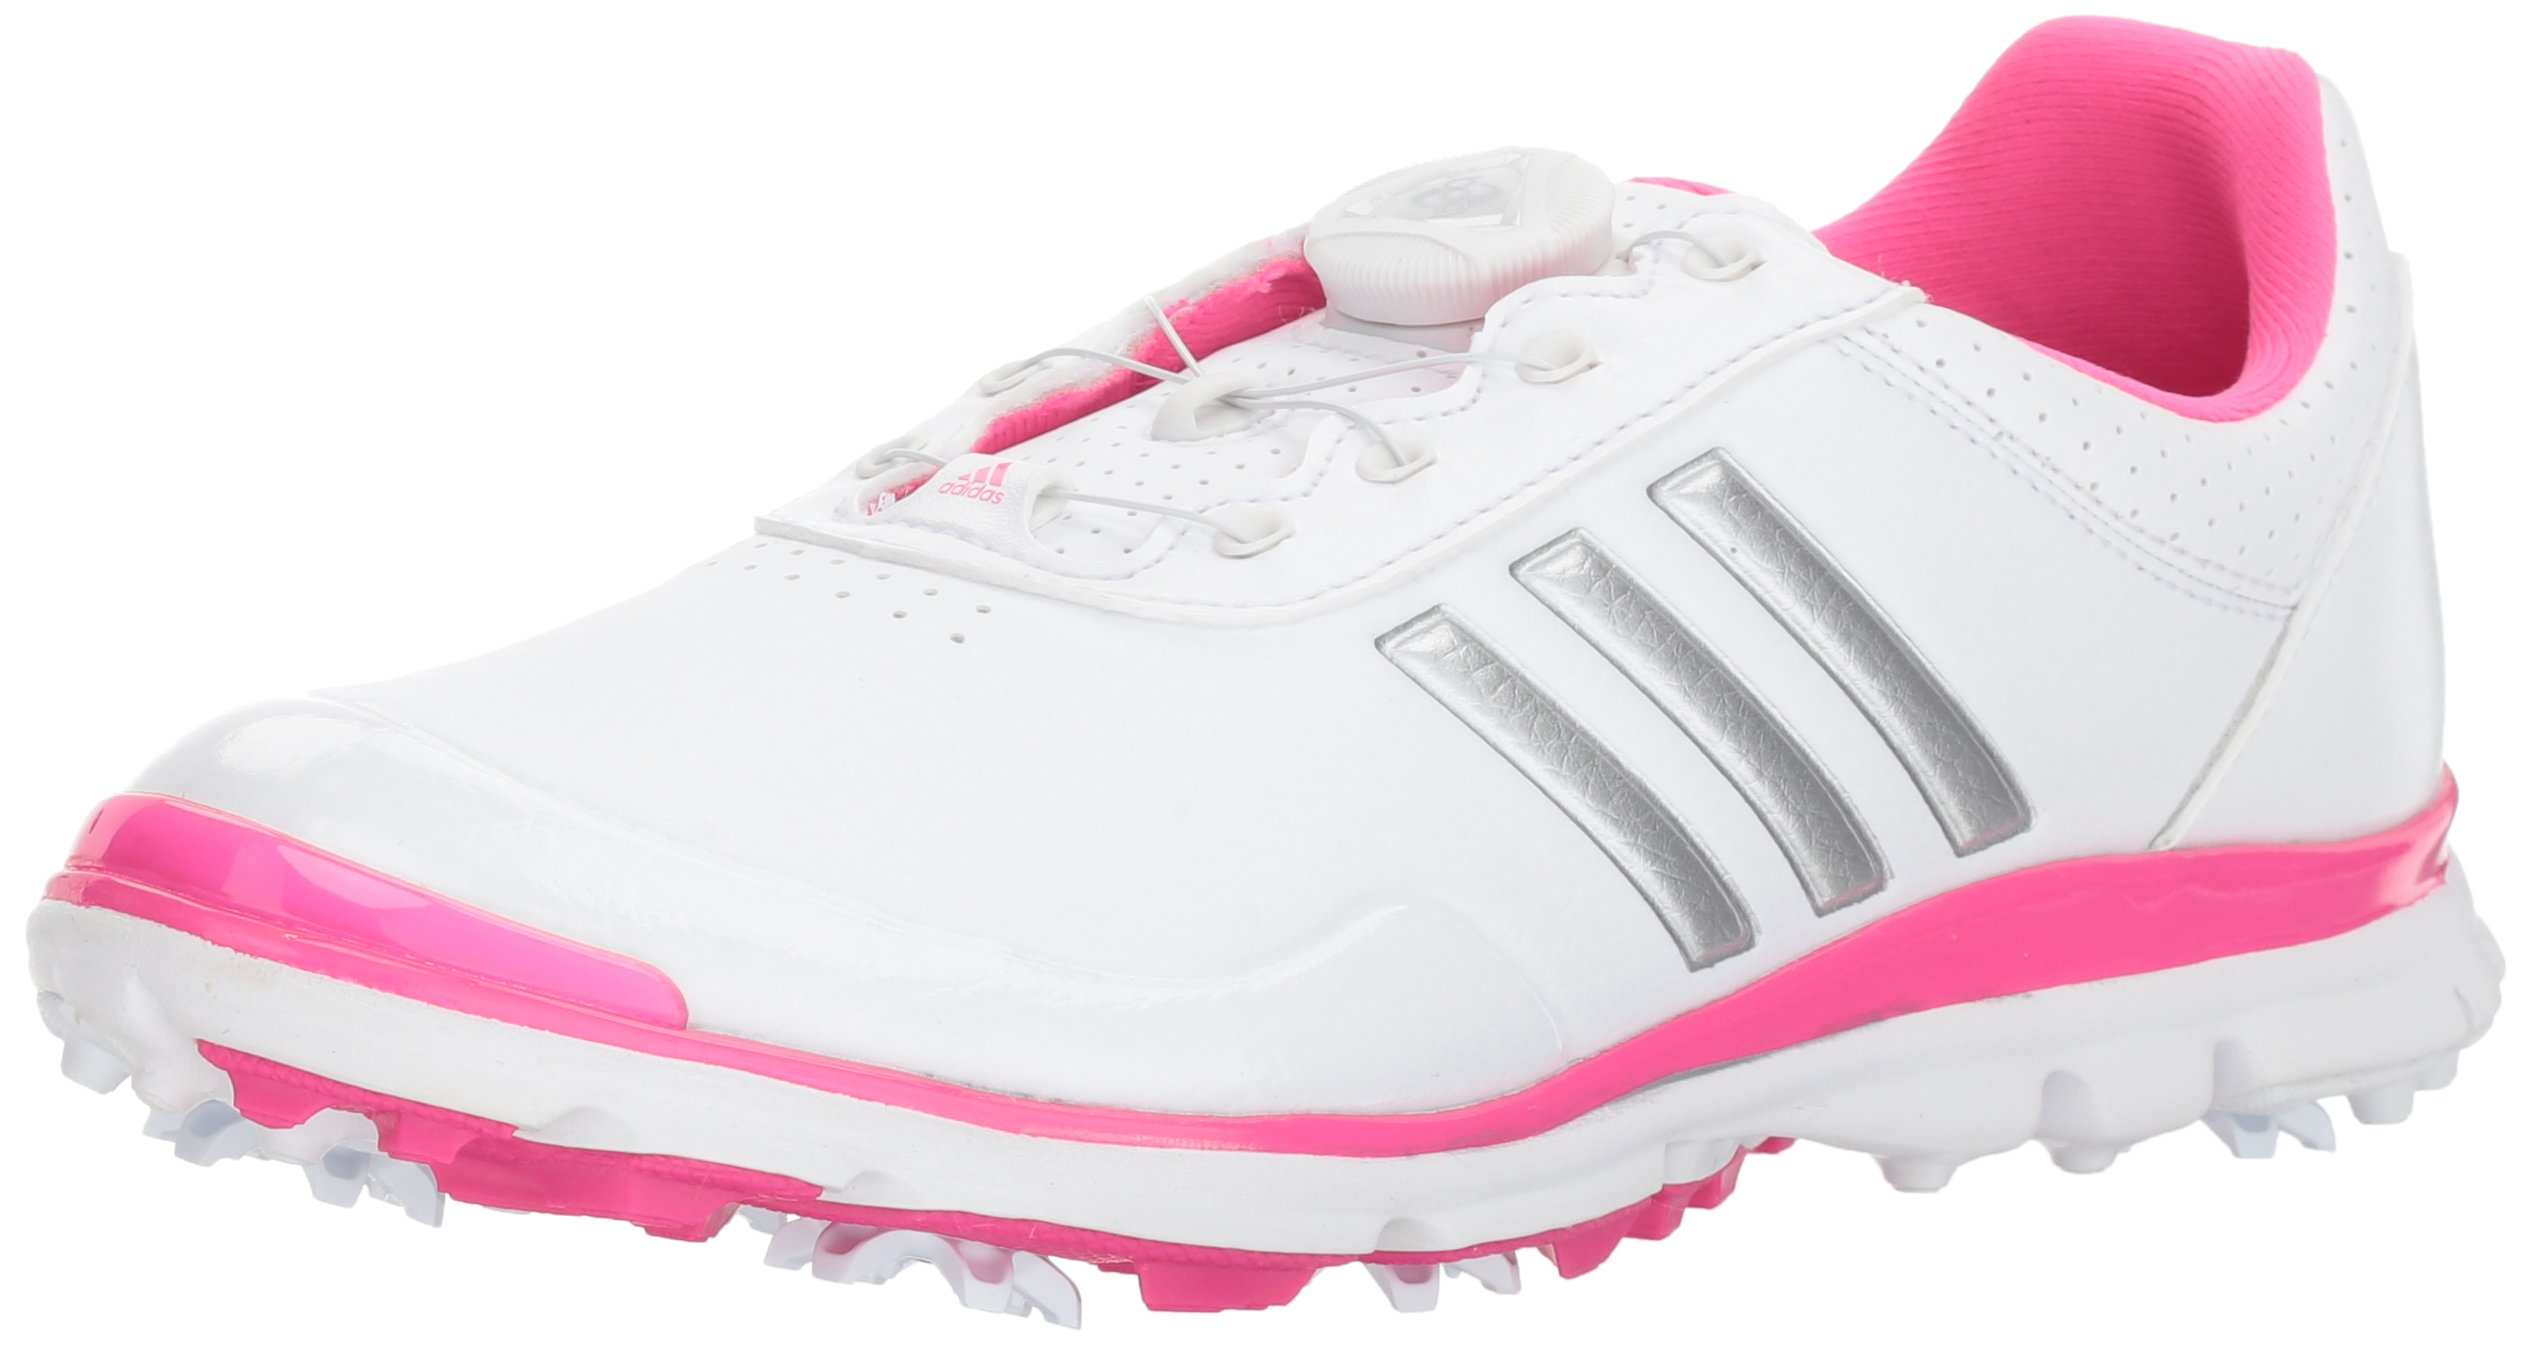 adidas Women's Adistar Lite BOA Golf Shoe, White/Silver Metallic/Shock Pink S, 8 M US by adidas